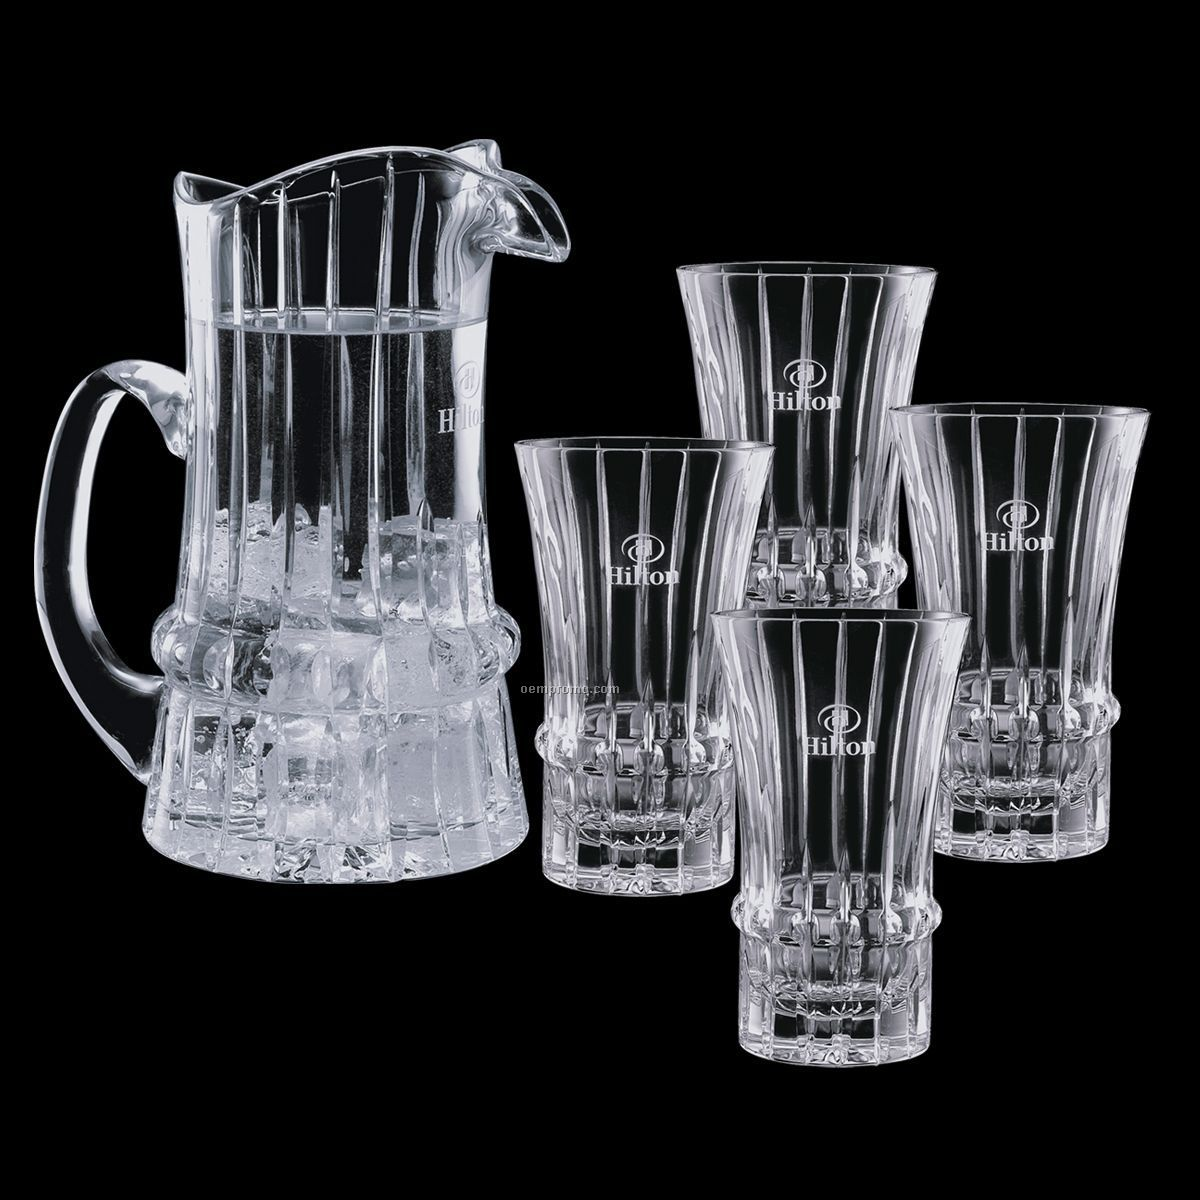 Steinbach Crystal Pitcher And 4 Cooler Glasses